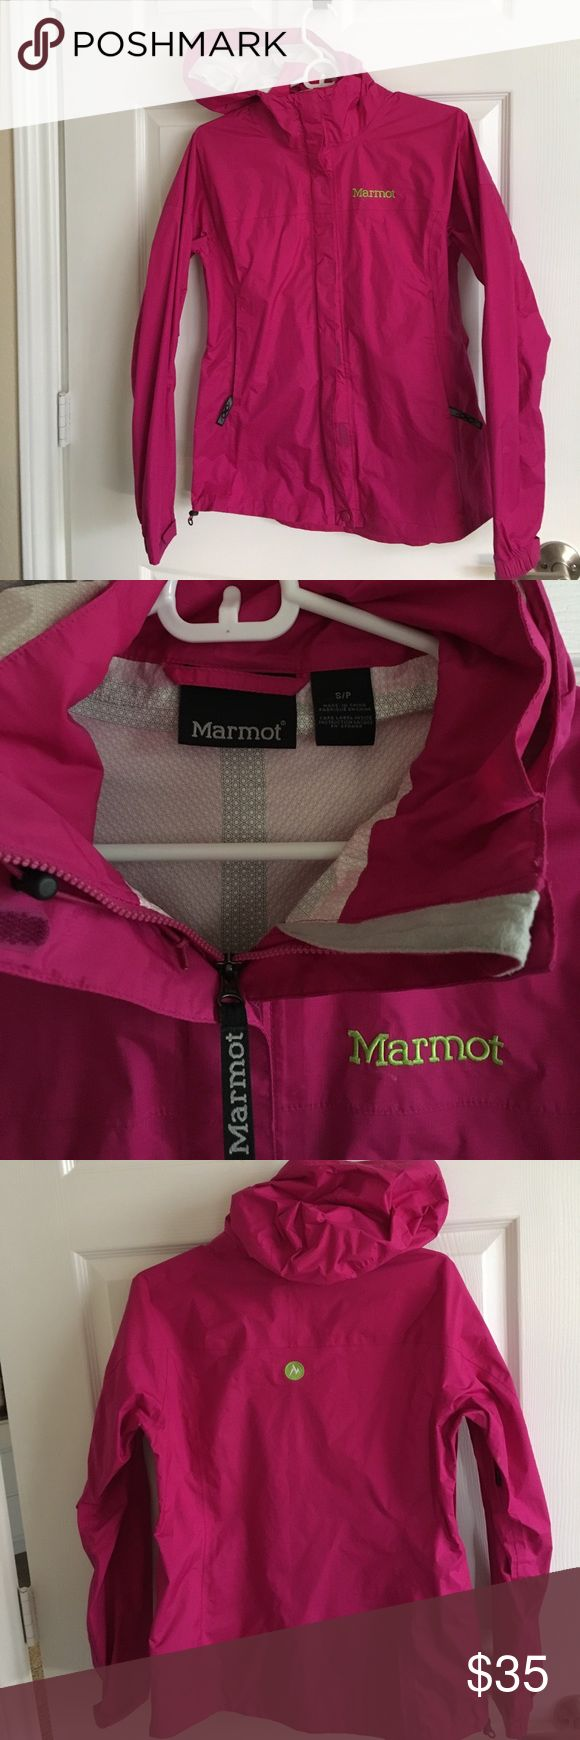 Marmot Minimalist PreCip rain jacket S Lightweight, waterproof, breathable and super durable Marmot PreCip jacket. Wear it on your next hike or just look cute in a rainstorm! Has pit zips and mesh pockets. Marmot Jackets & Coats Utility Jackets